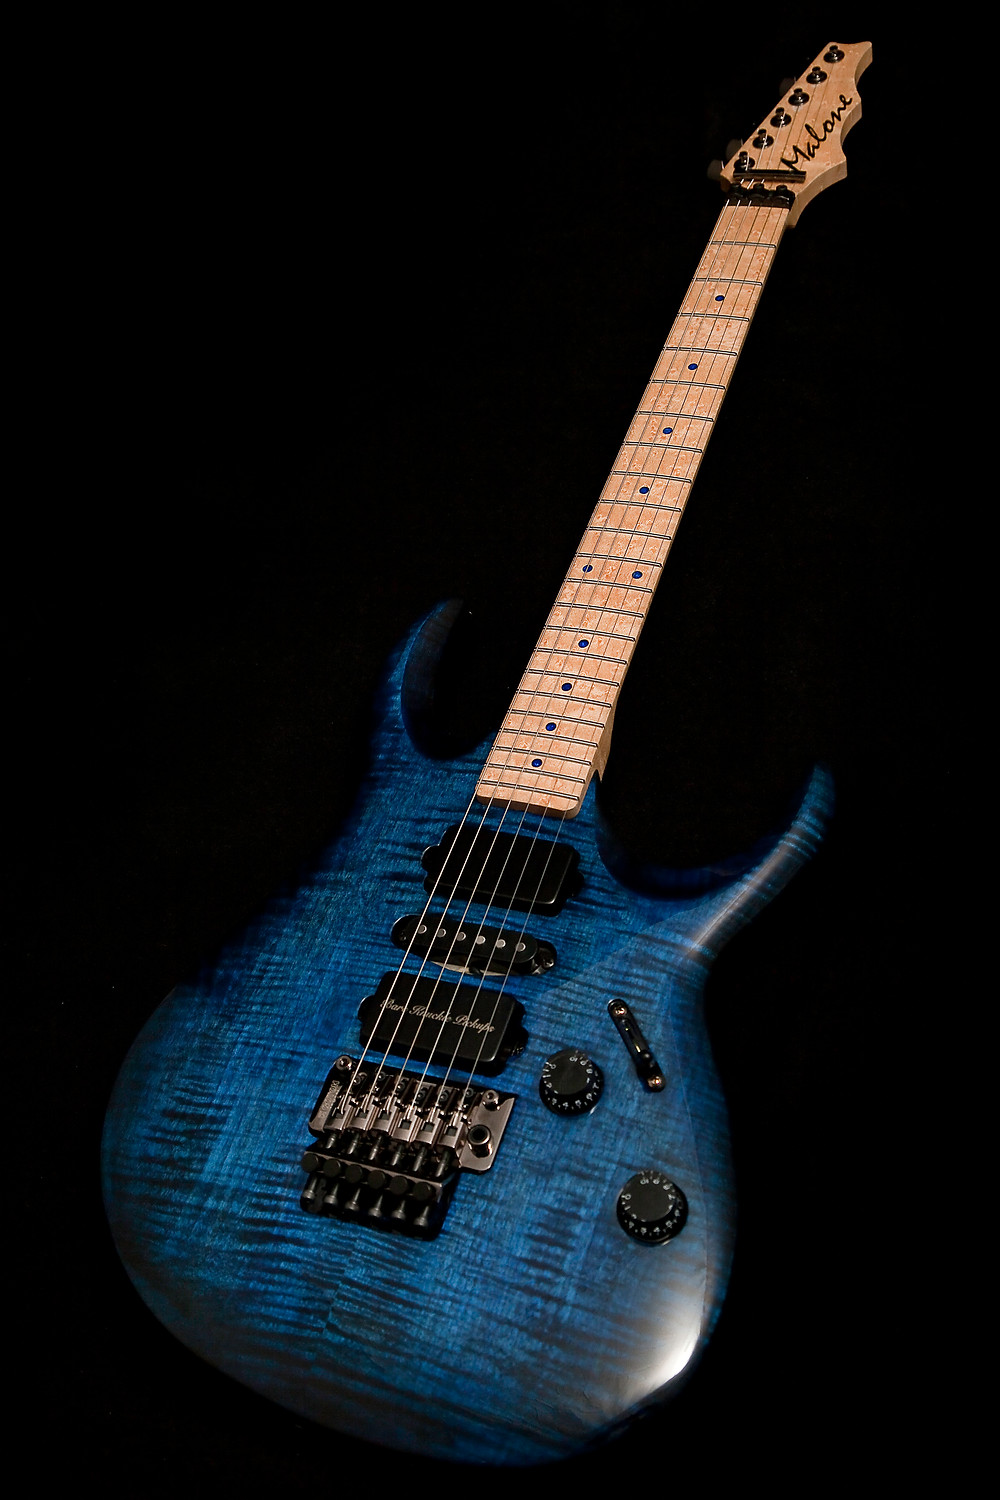 The image is a full shot of an electric guitar. the guiter has a blue and black flame-like striped body. The neck is made from birds eye maple. The hardware is black. The guitar looks awesome